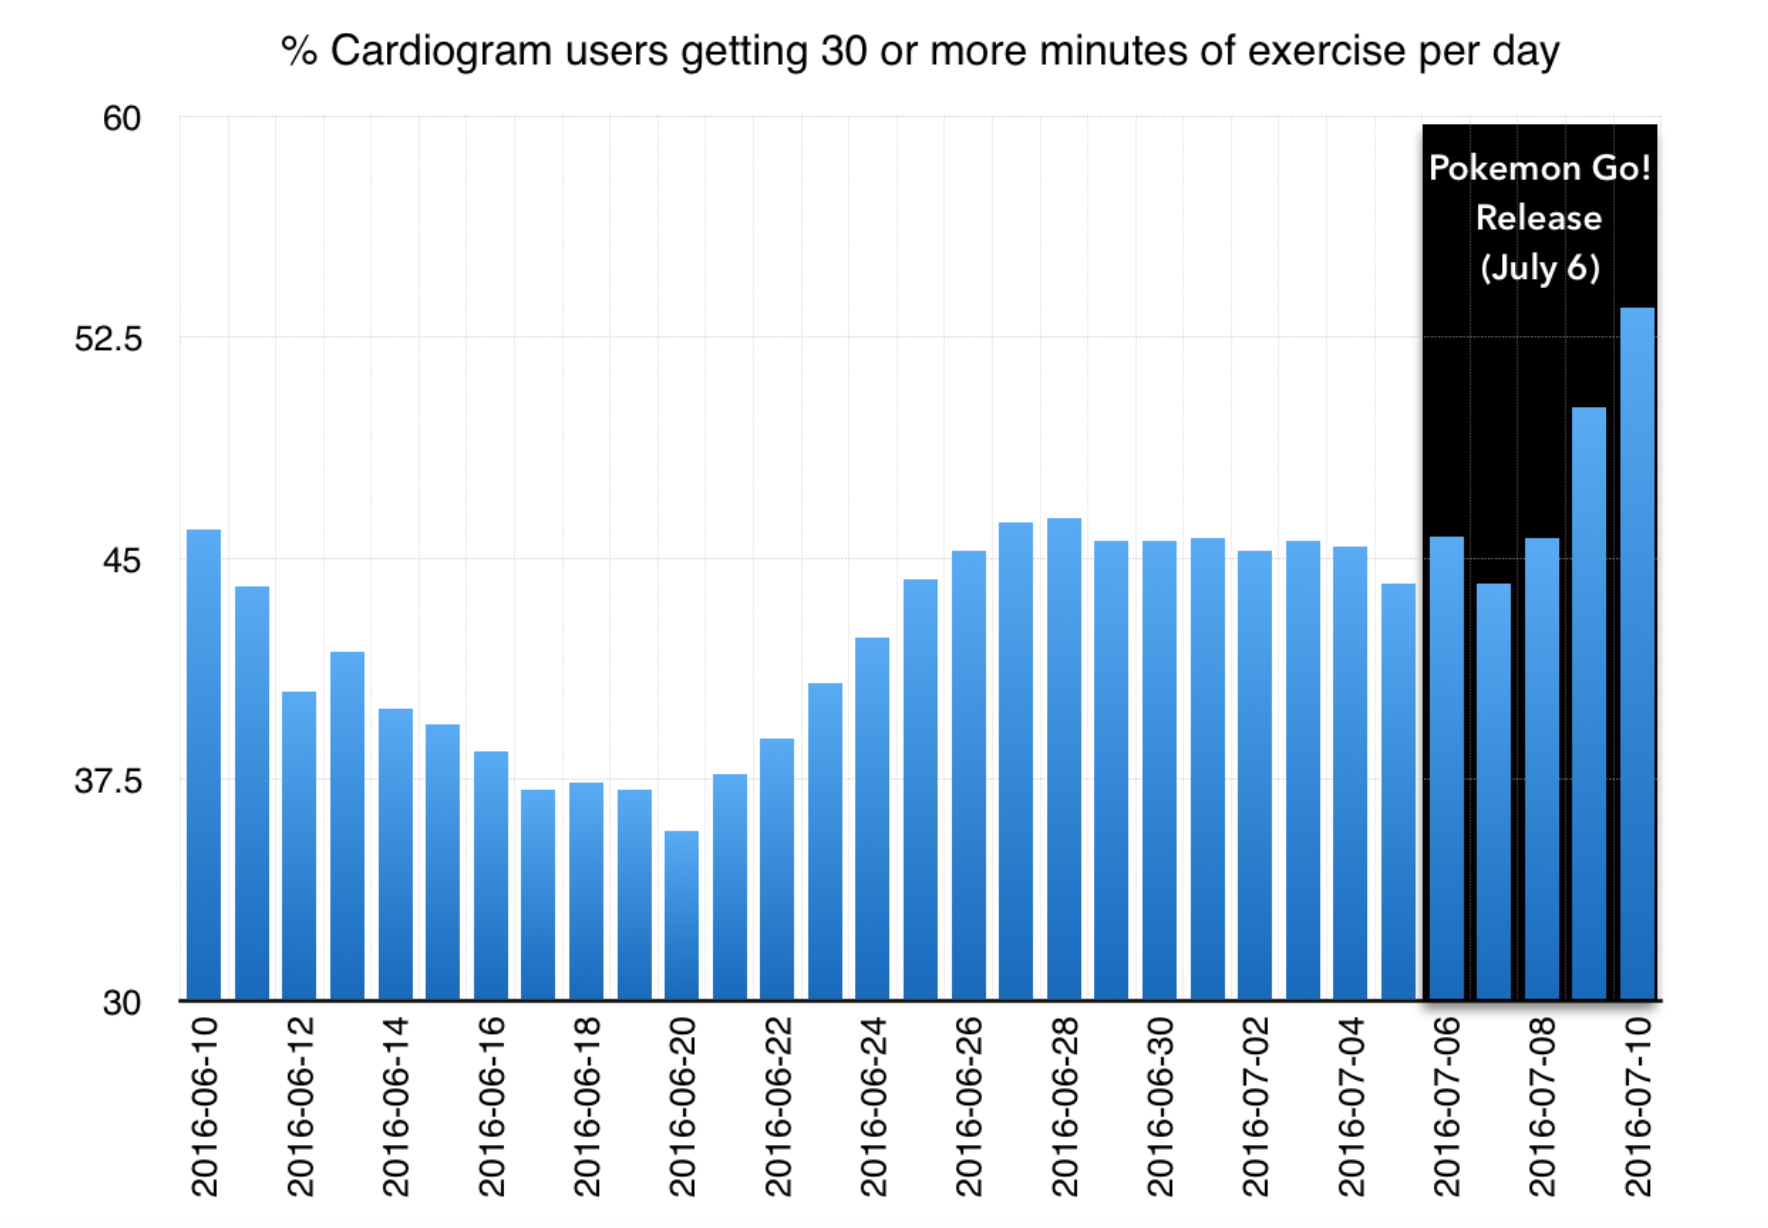 Cardiogram Users Exercise More With Release of Pokémon Go